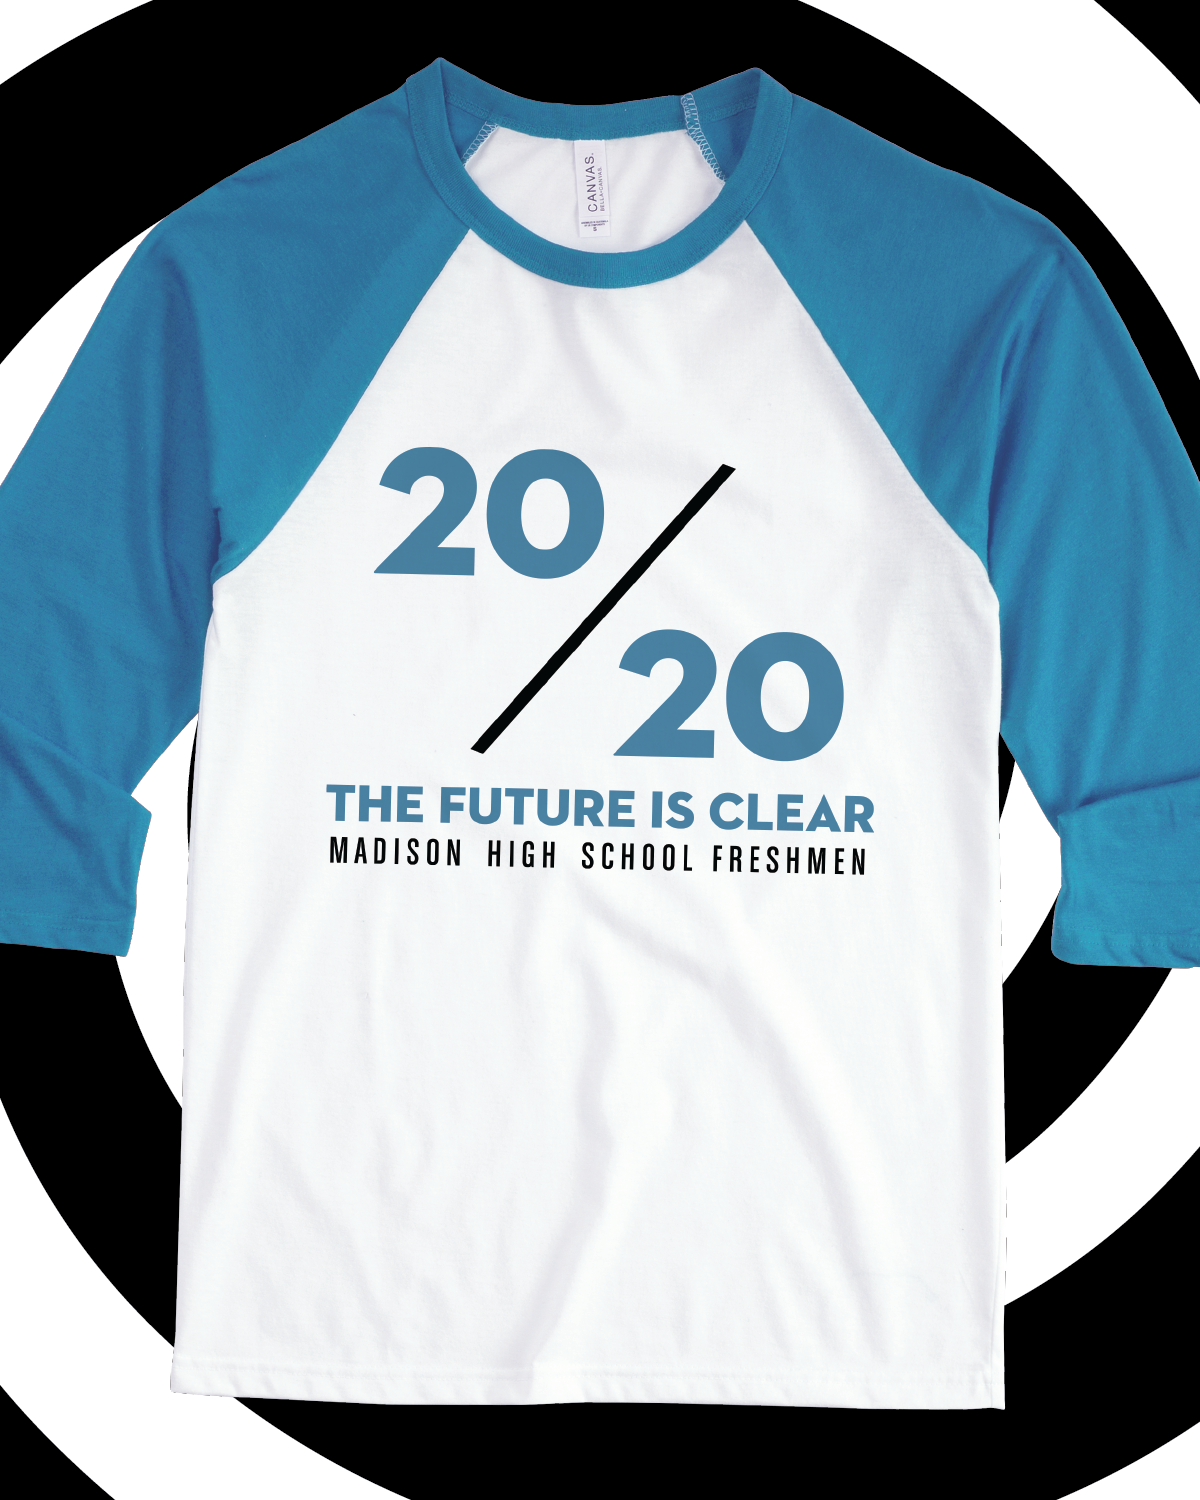 Design t shirt class - 20 20 The Future Is Clear Class Of 2020 Raglan Design Idea For Custom